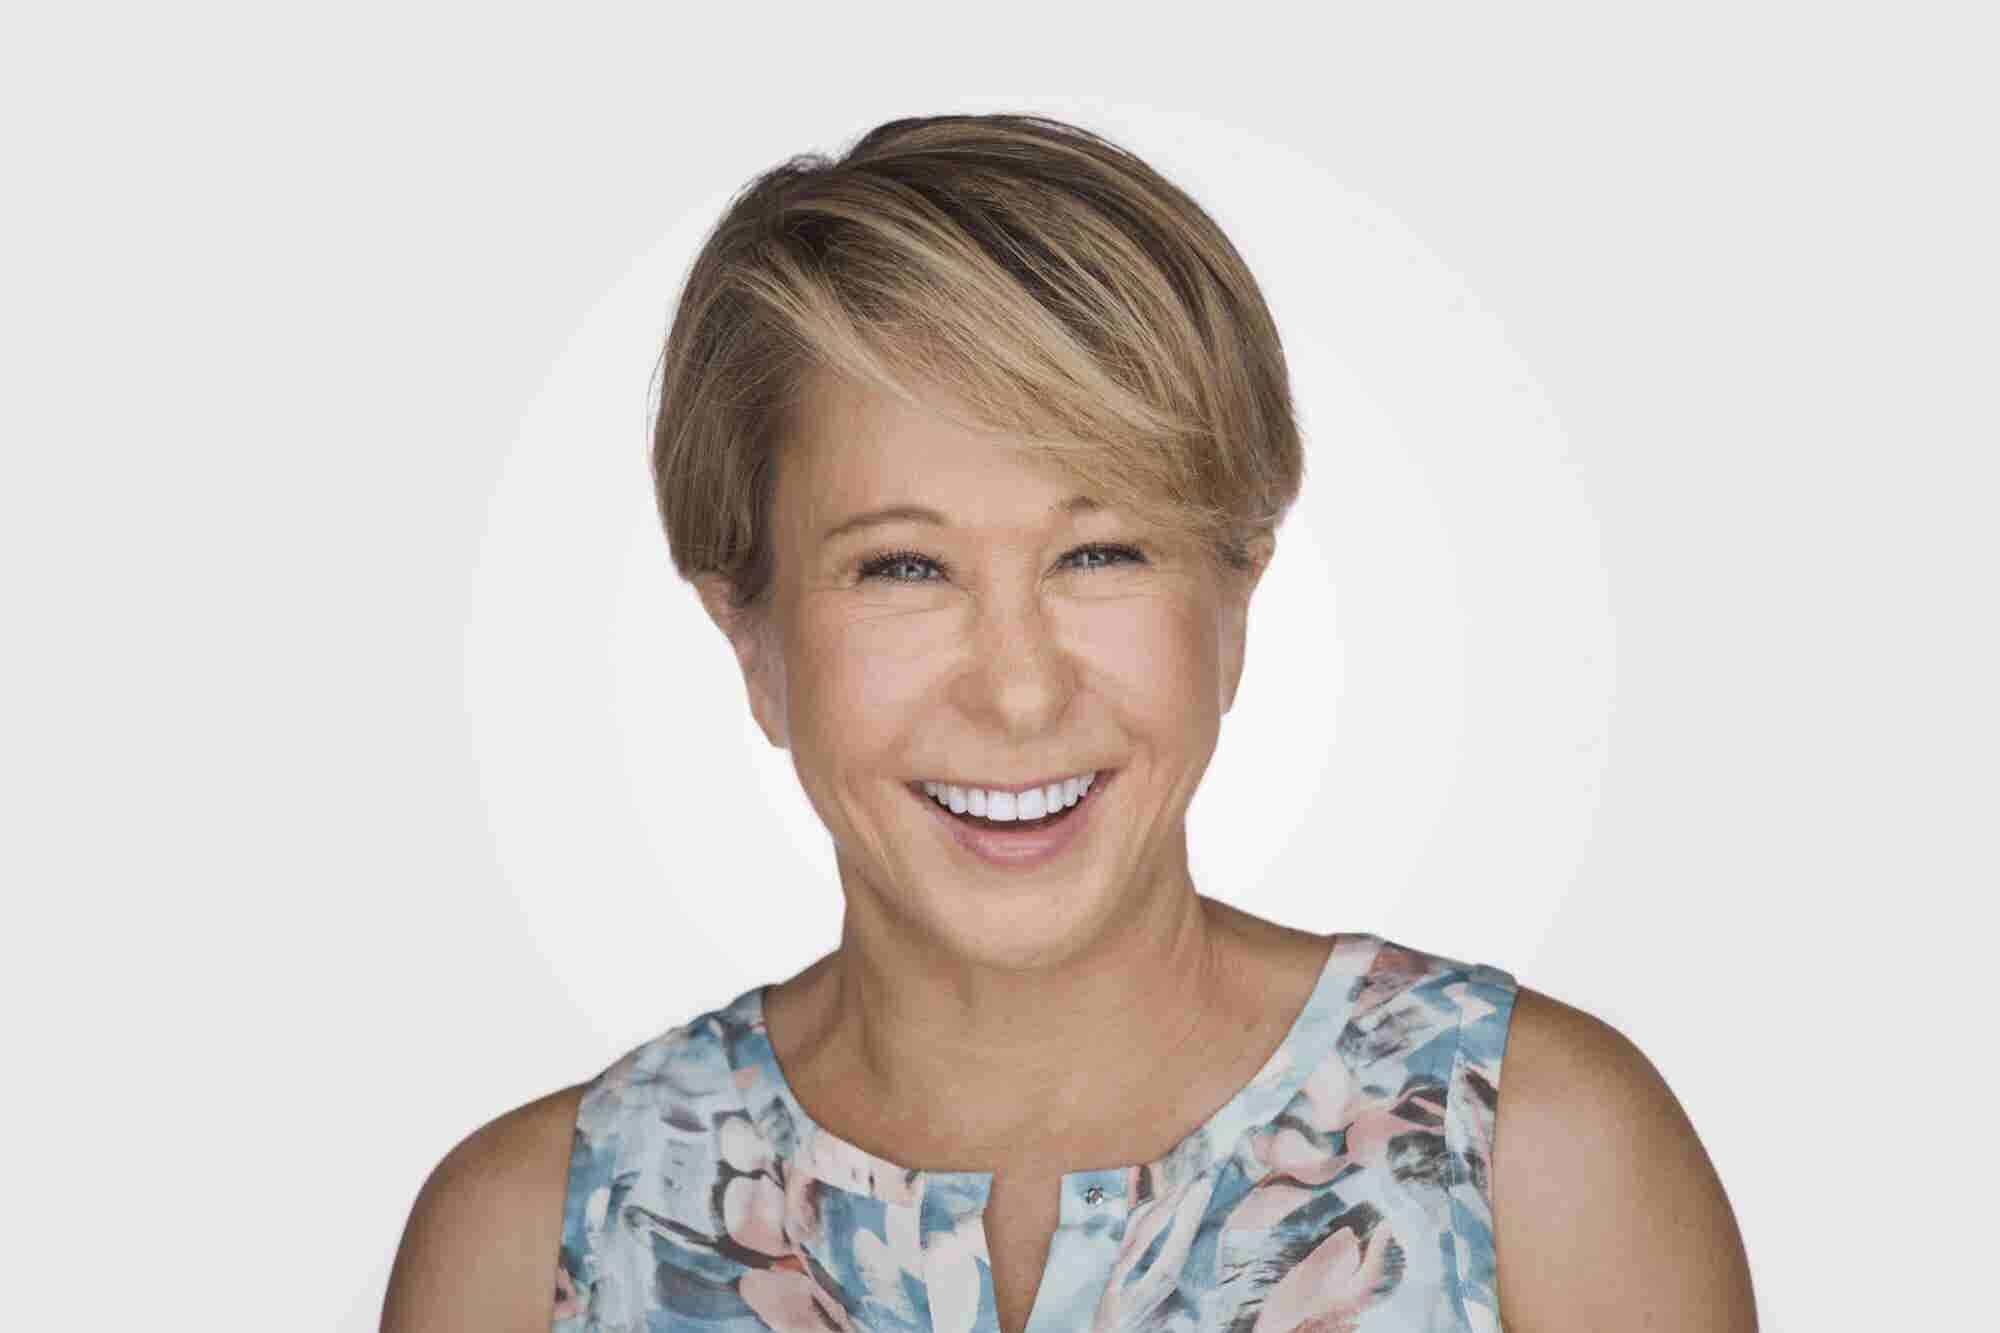 (Podcast) Simpsons' Star Yeardley Smith Shares Why You Should Never Let the Pursuit of Perfection Get in the Way of Enjoying the Ride